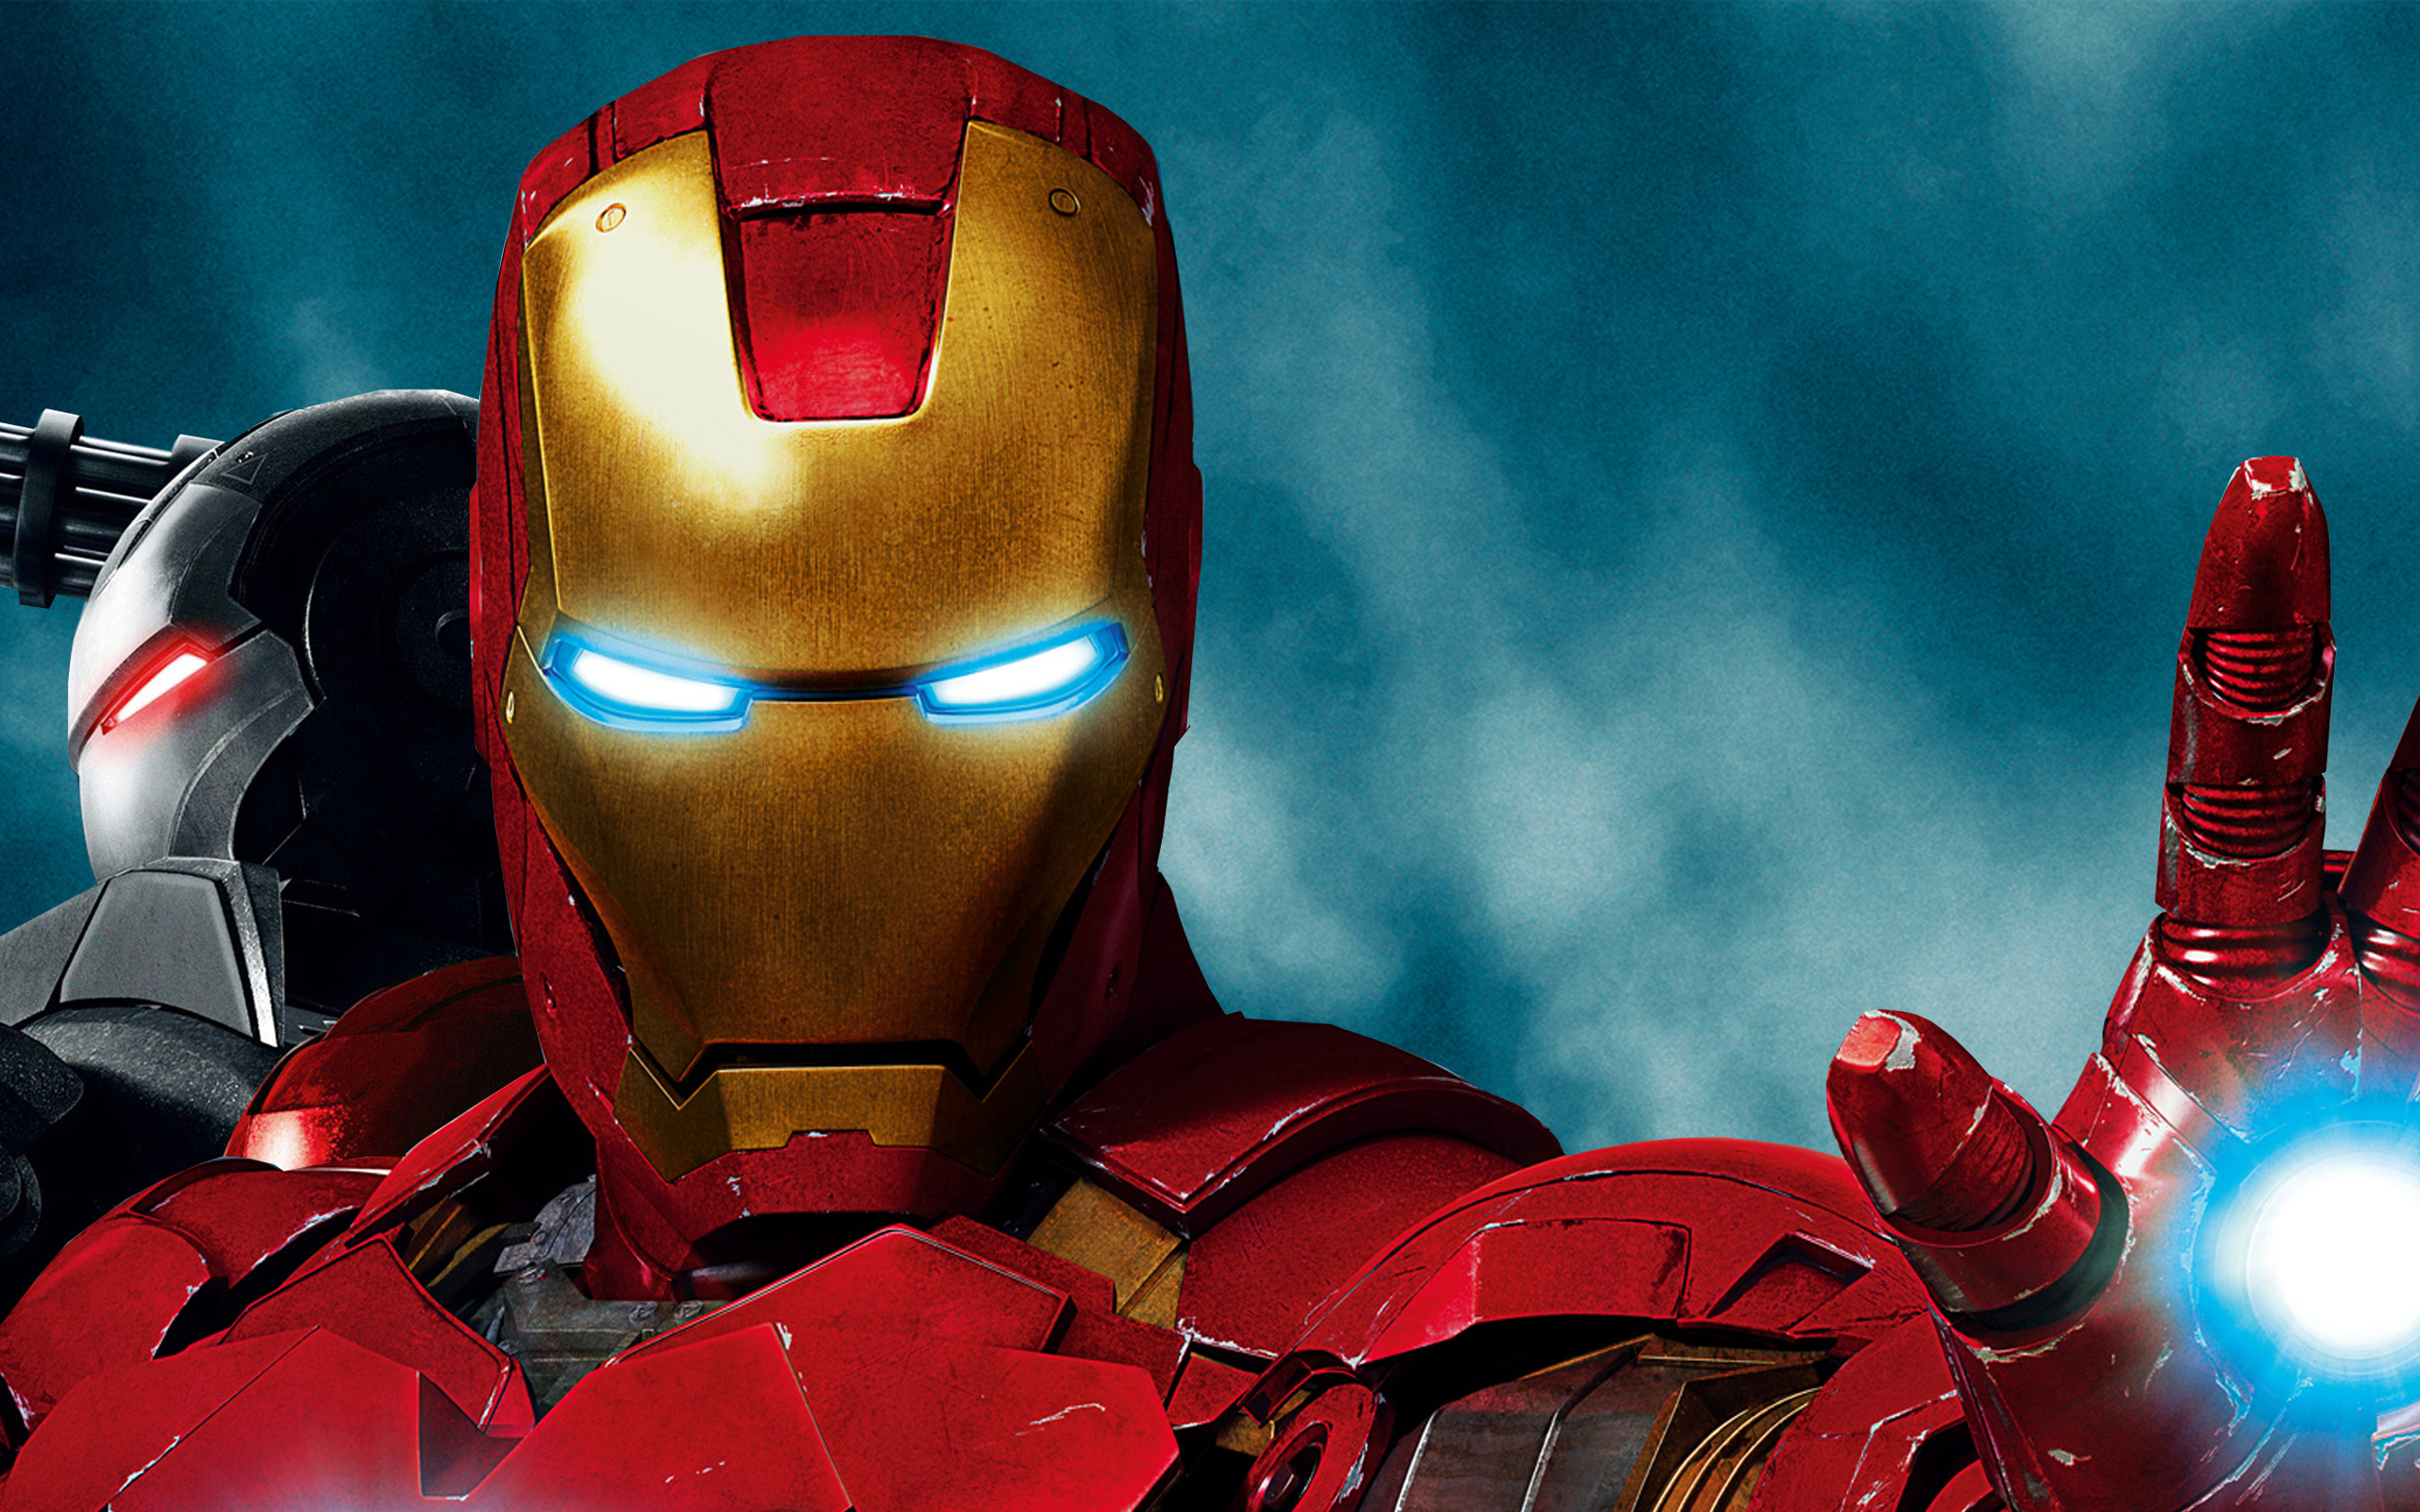 Free download Amazing Iron Man 2 Wallpapers HD Wallpapers